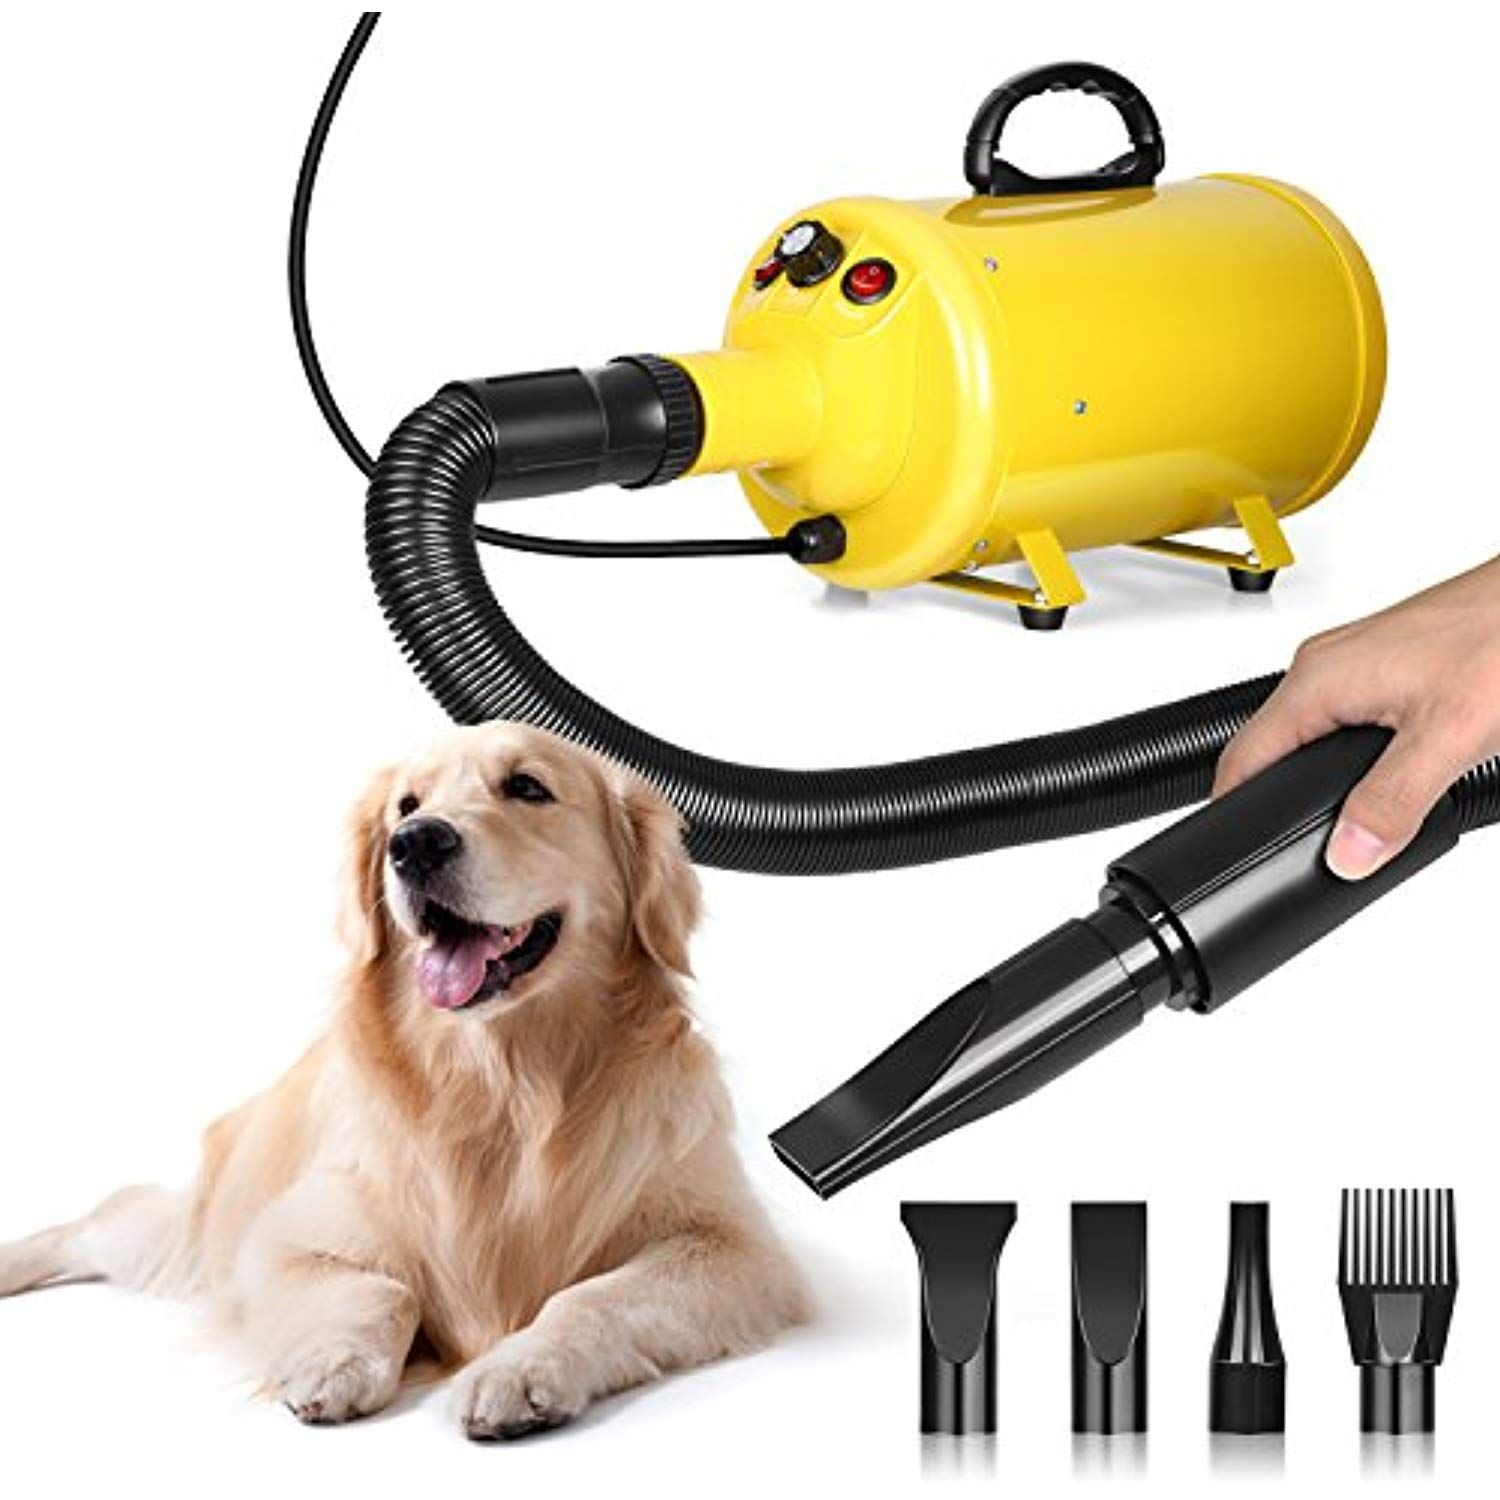 Amzdeal Dog Dryer 2800w 3 8hp Pet Blow Dryer Grooming Hair Blower